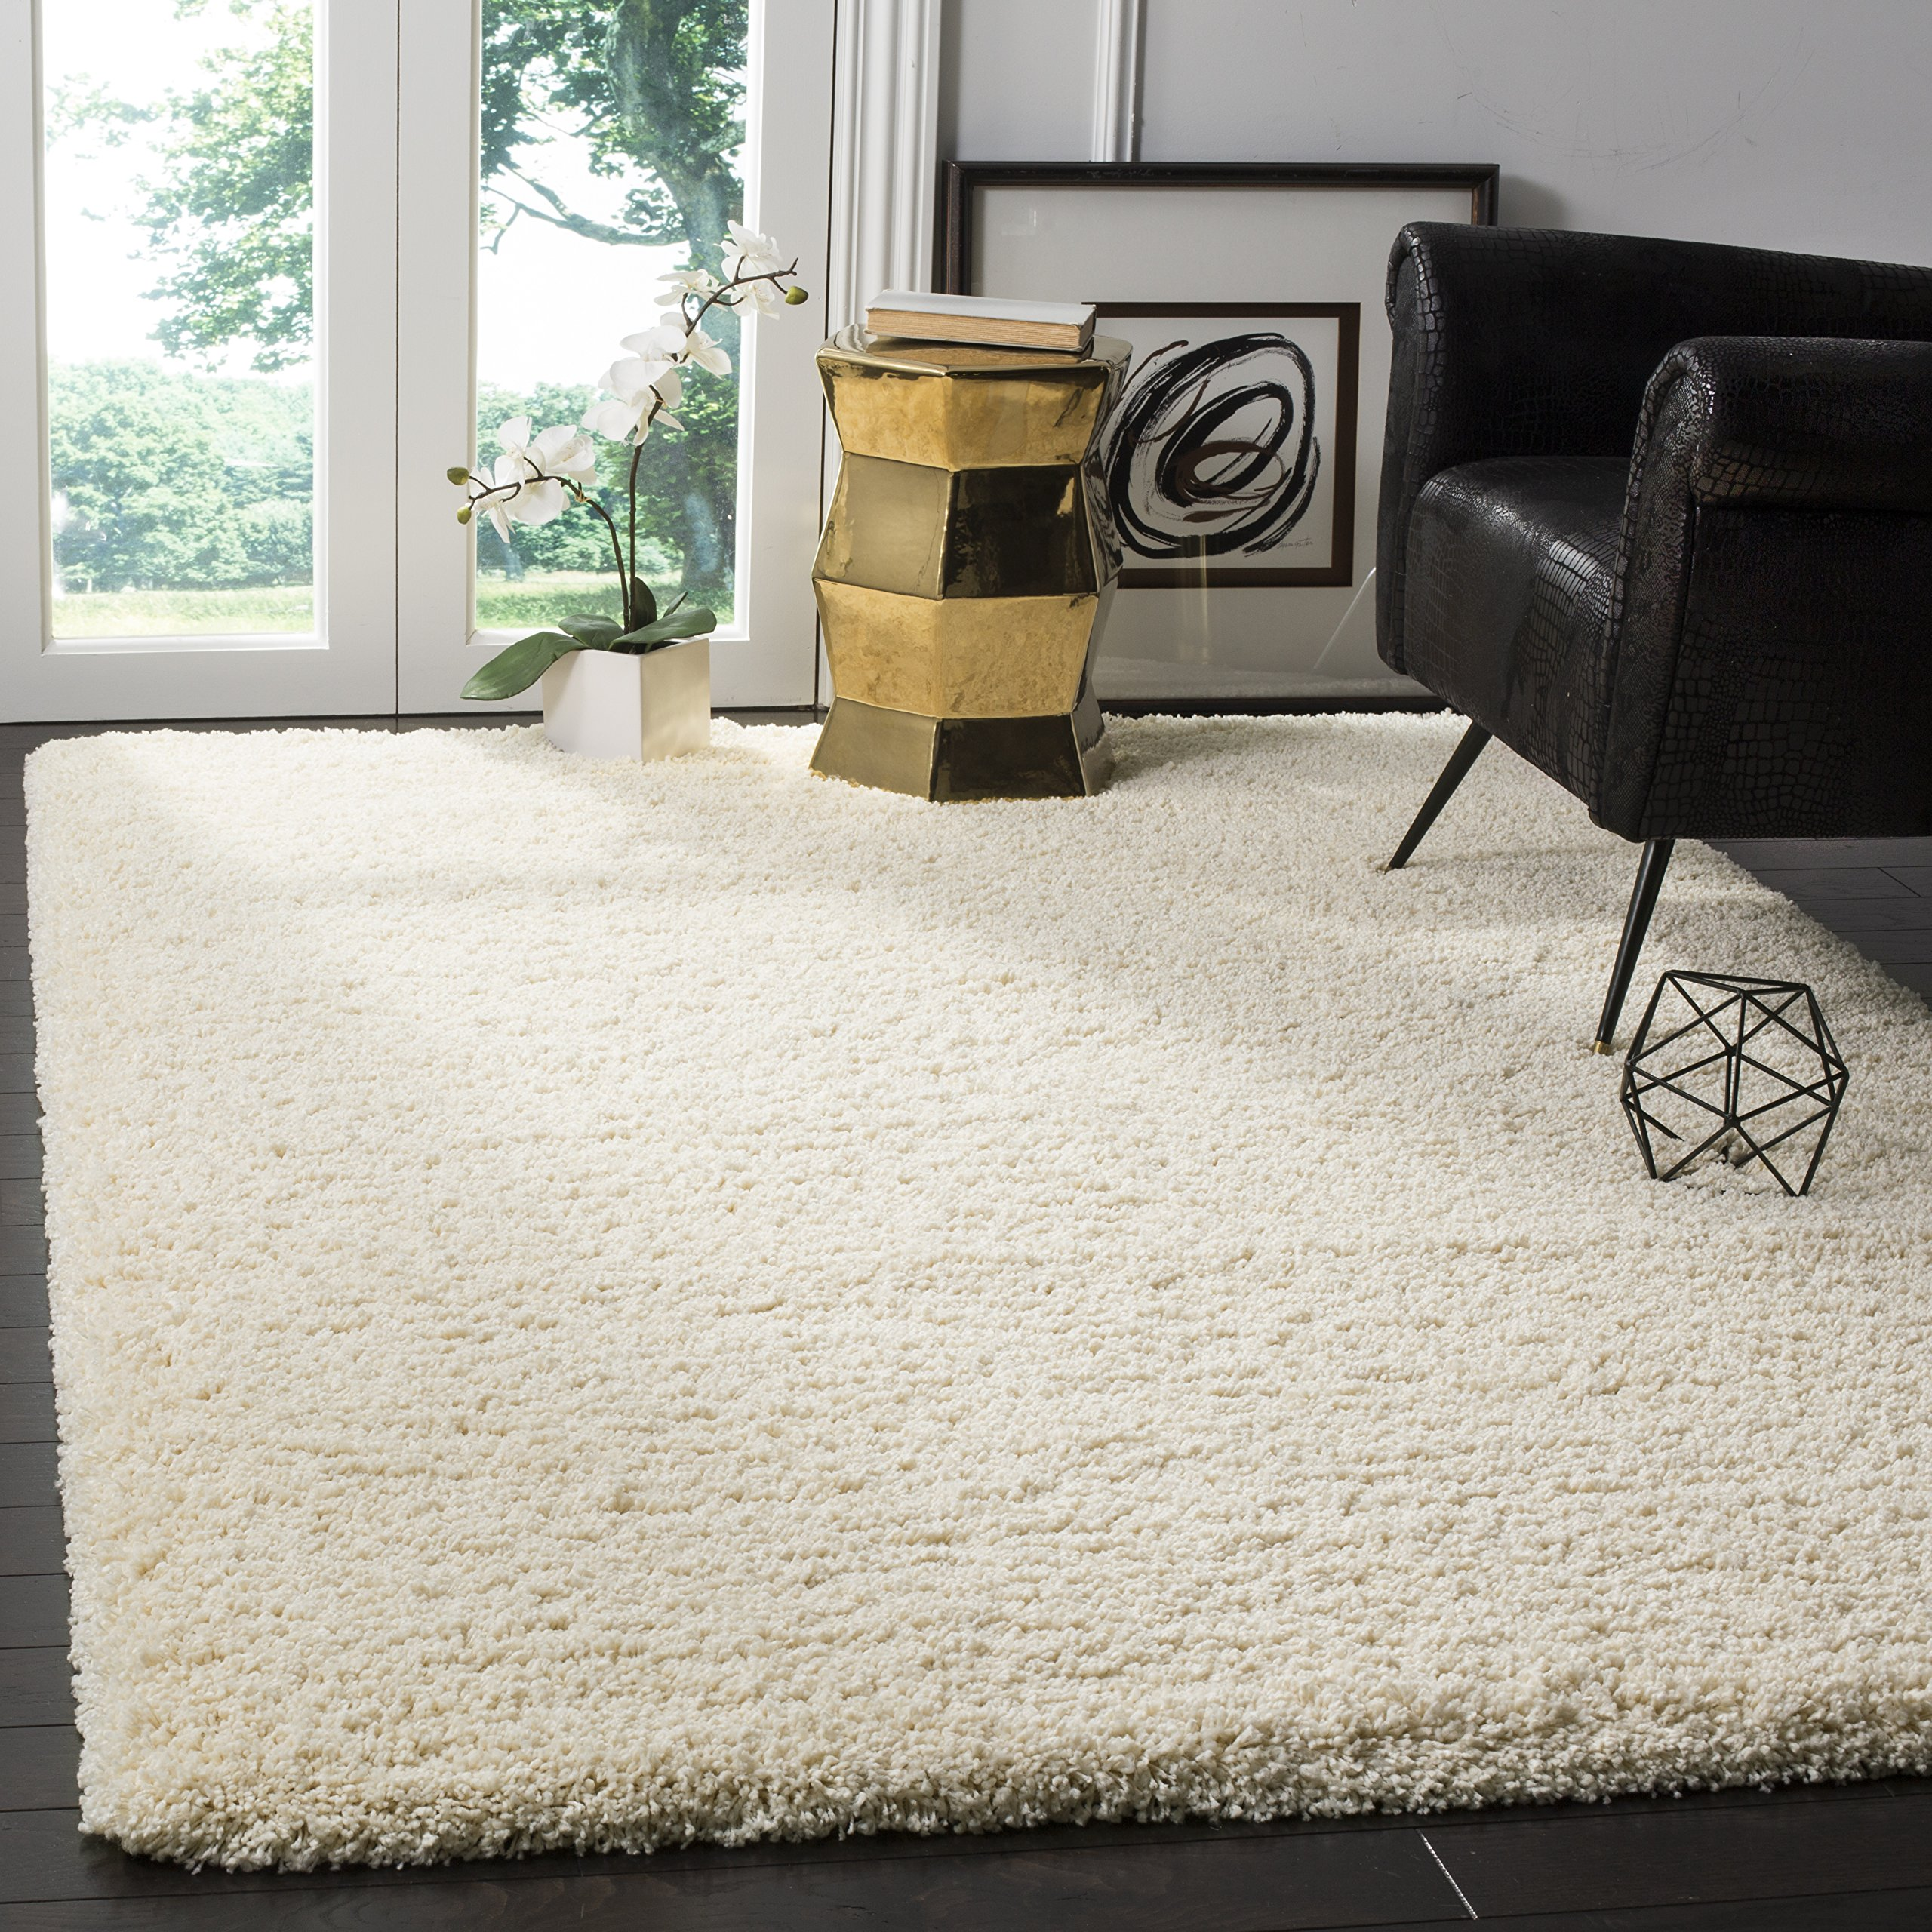 Safavieh California Shag Collection SG151-1212 Ivory Area Rug (5'3'' x 7'6'')